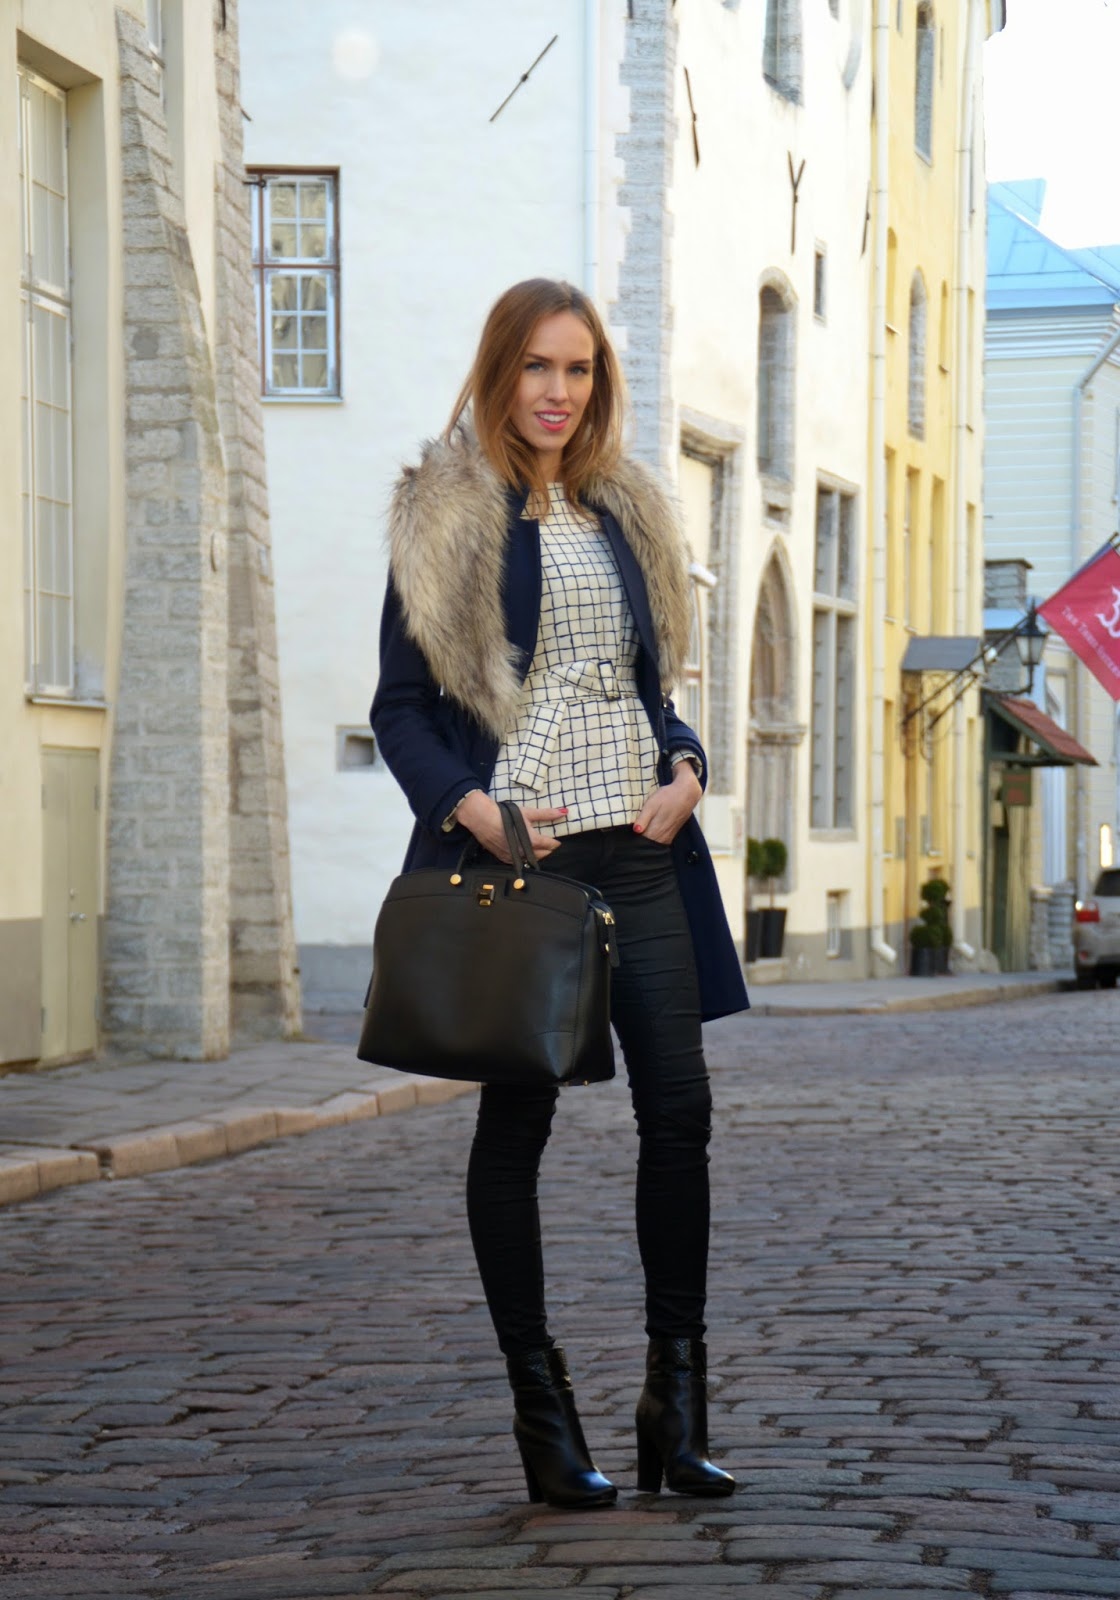 casual-chic-winter-outfit-street-style kristjaana mere